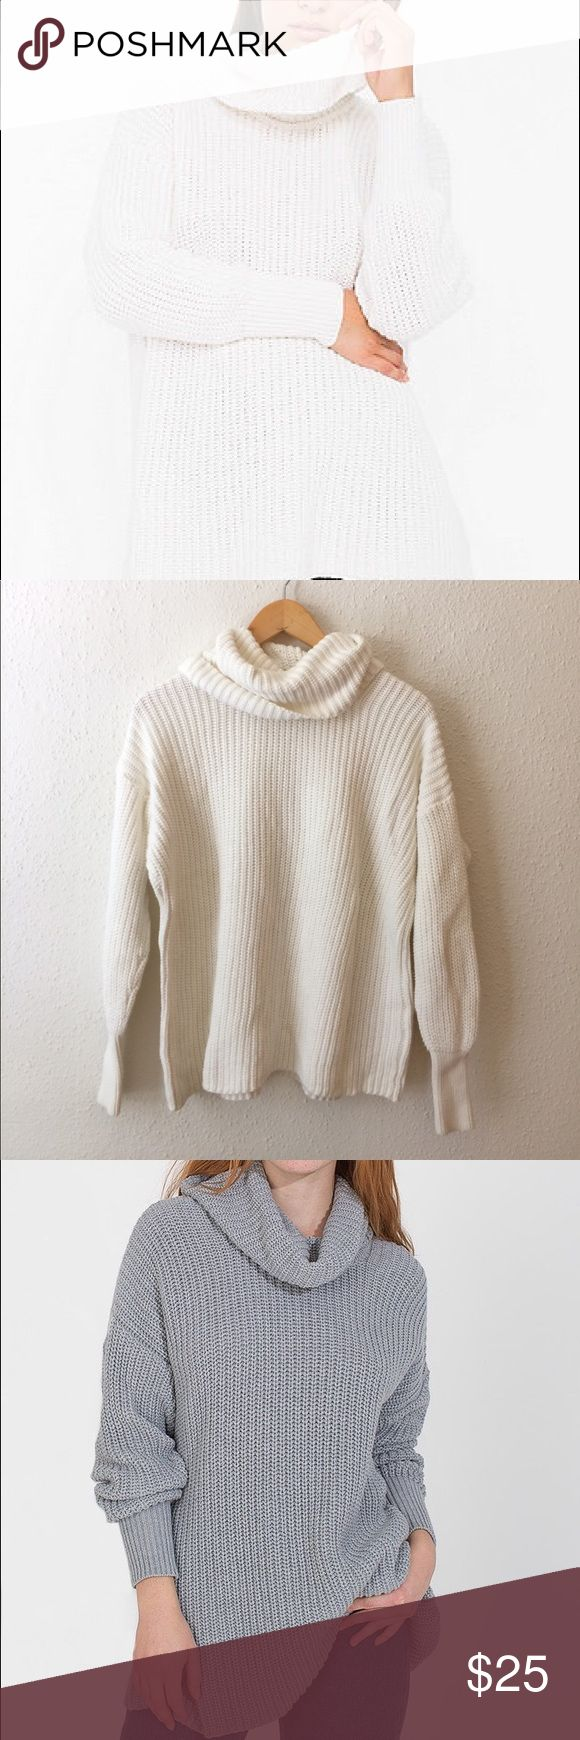 Oversized Cowl Neck Knit Sweater Super comfy and adorable, one size fits all cream oversized sweater from American Apparel 🇺🇸🇺🇸🇺🇸⭐️⭐️ gorgeous with jeans and some heels or boots in the winter. Worn only a few times and has been washed and air dried. No lowballing please! American Apparel Sweaters Cowl & Turtlenecks